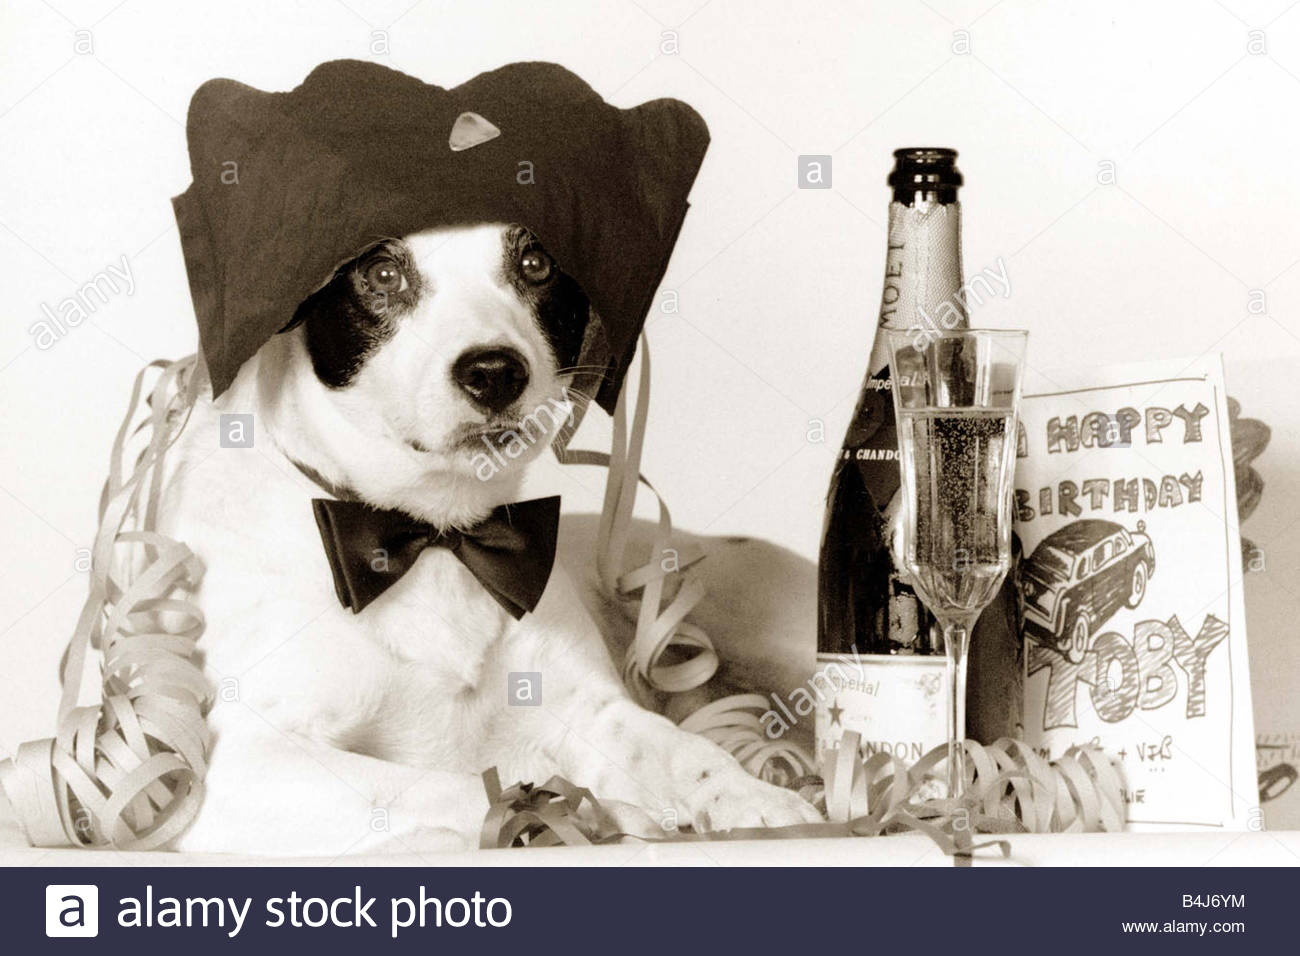 border collie birthday pictures ; party-animal-border-collie-dog-celebrating-his-borthday-with-a-bottle-B4J6YM